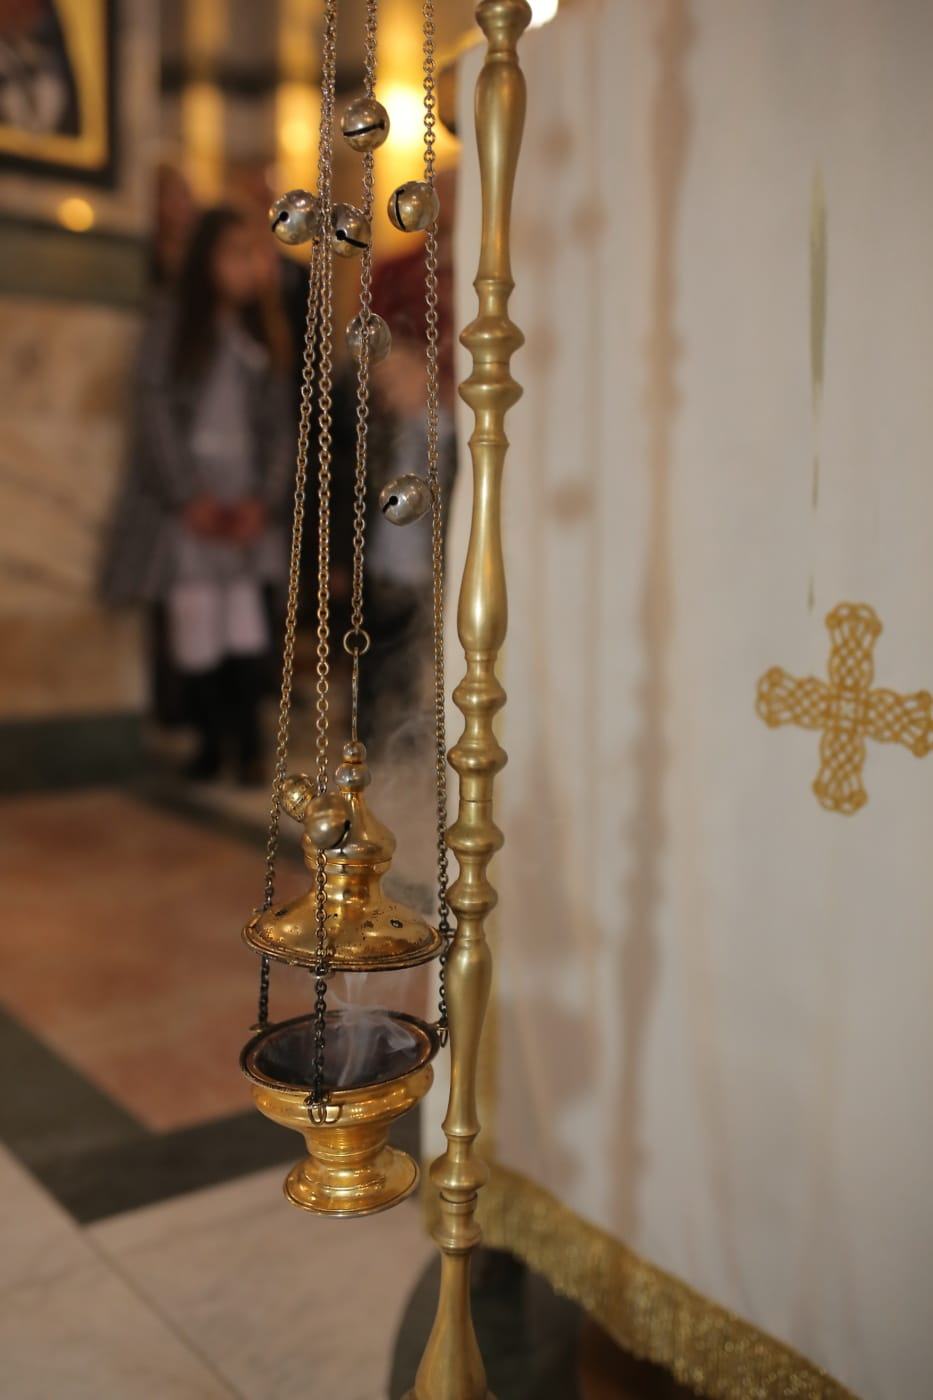 metal, brass, object, religious, chain, attachment, antique, old, indoors, traditional